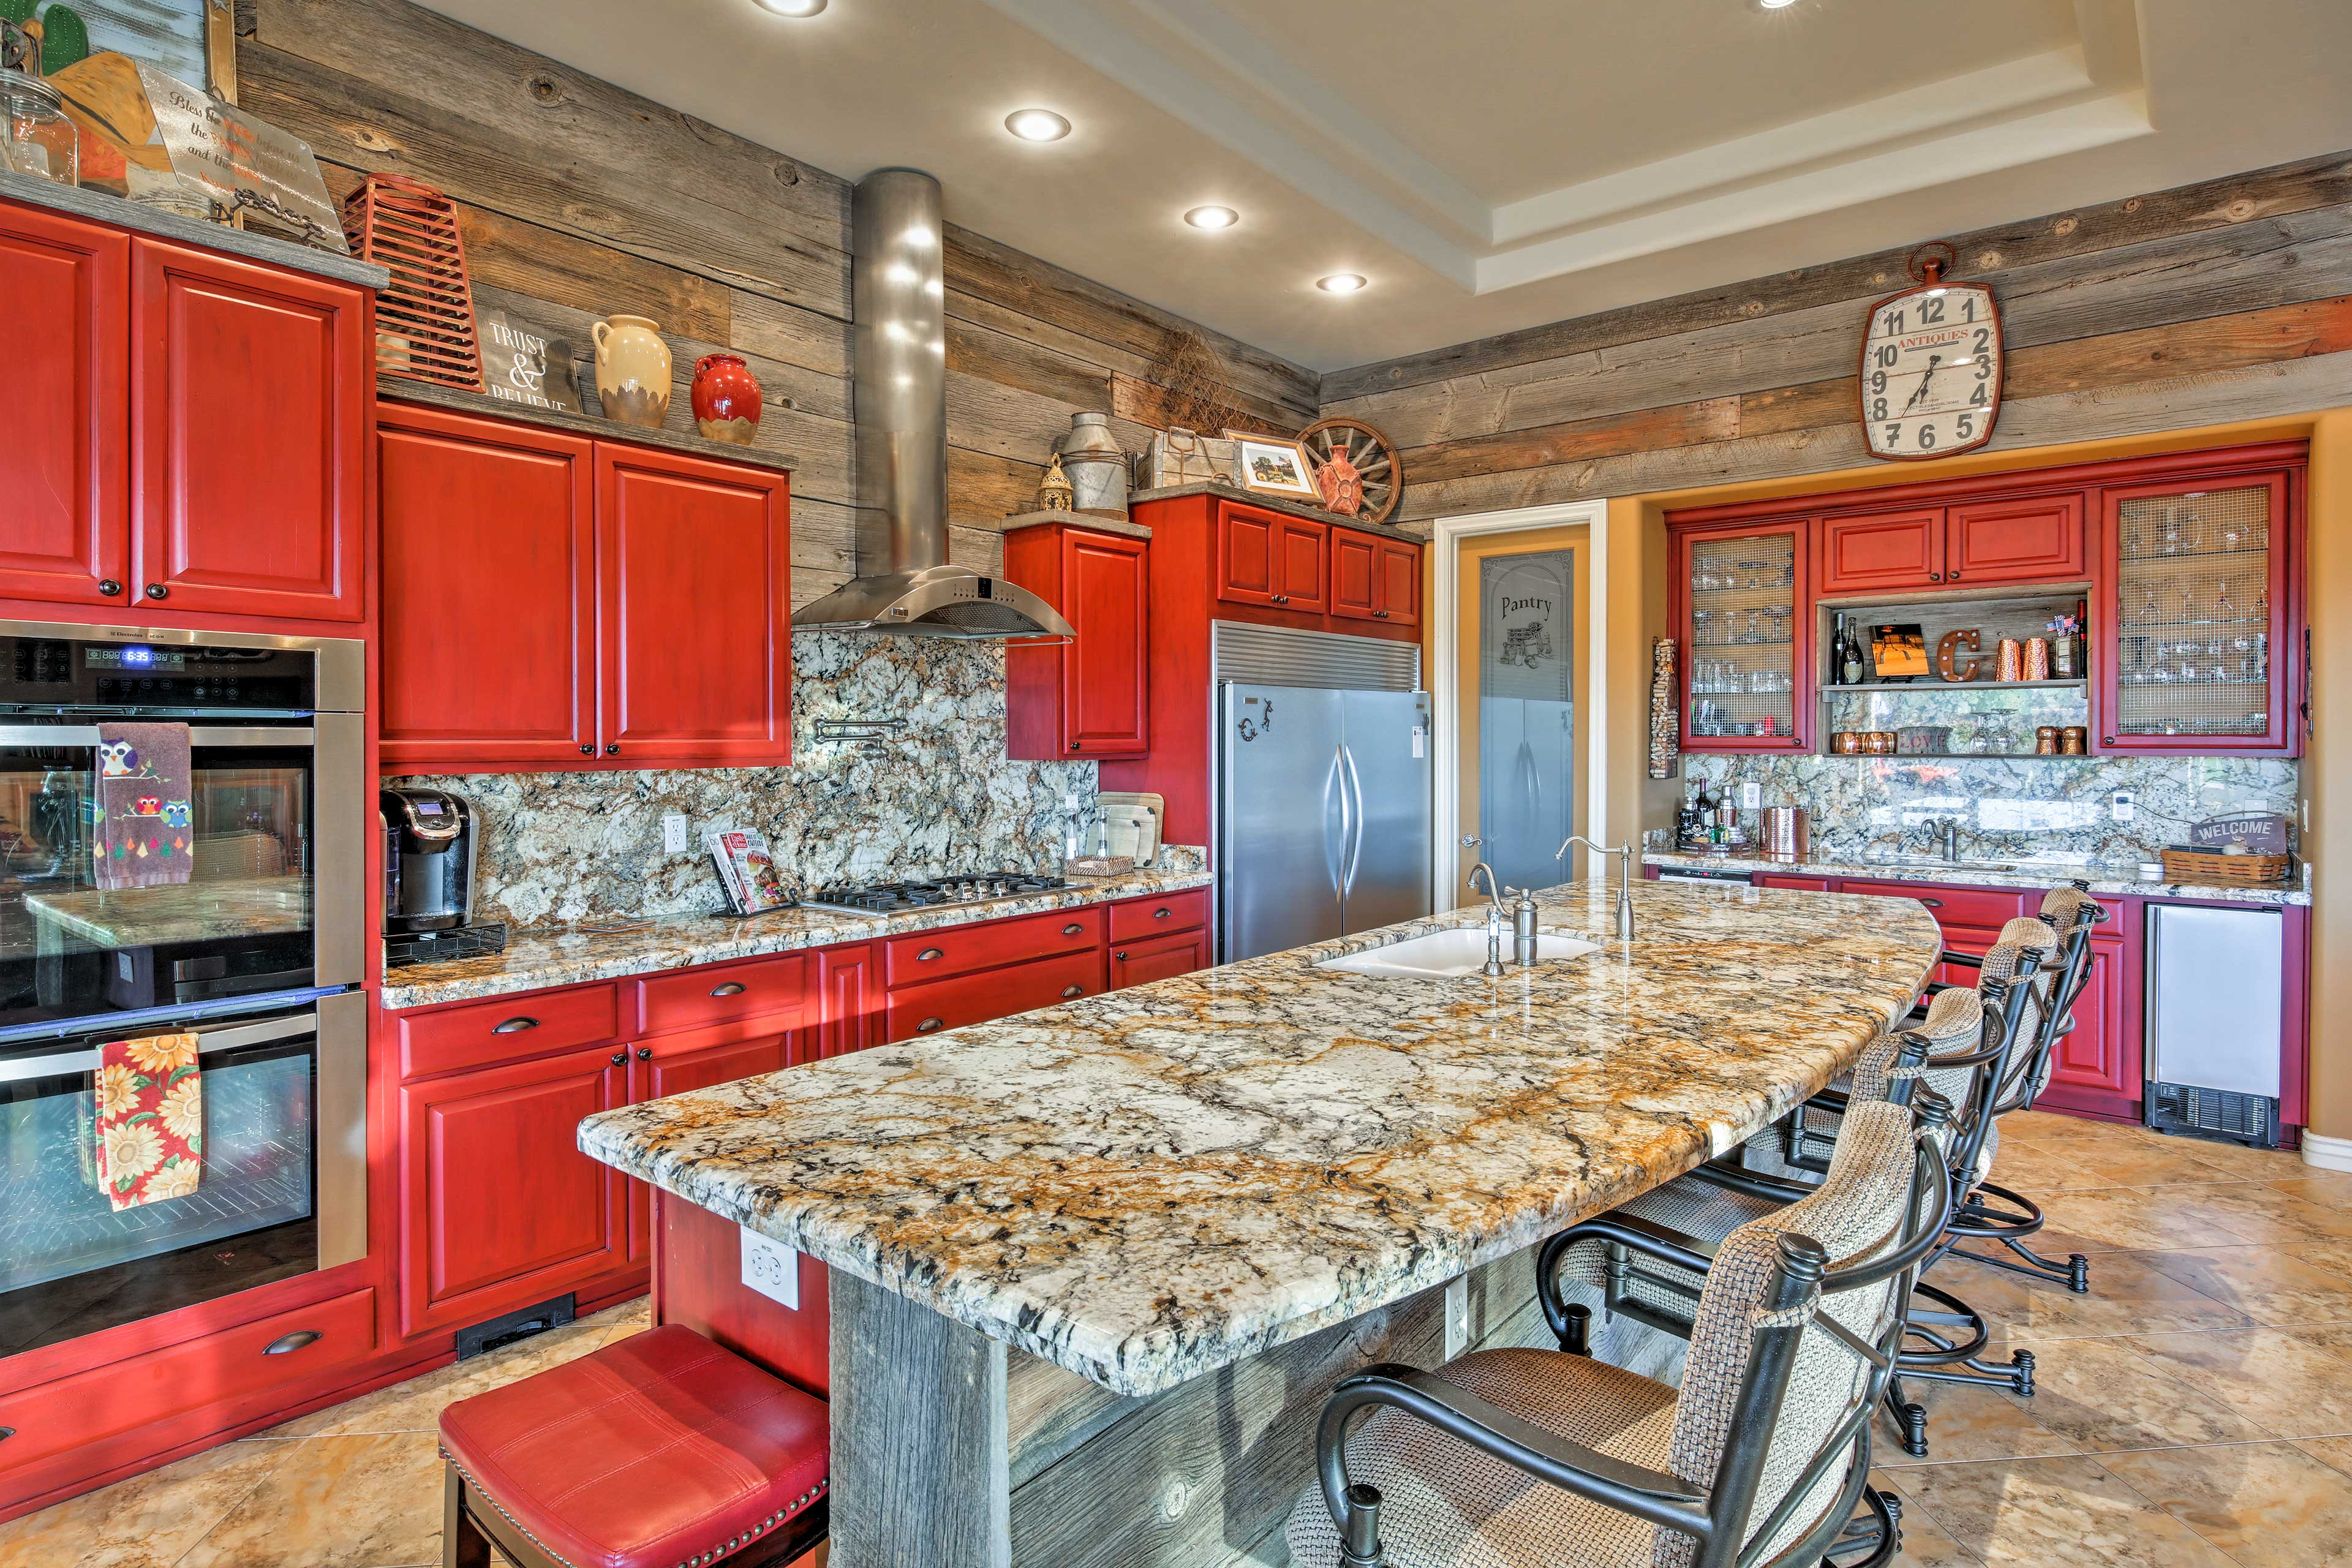 The open floor plan interior features sumptuous decor and marble finishes.